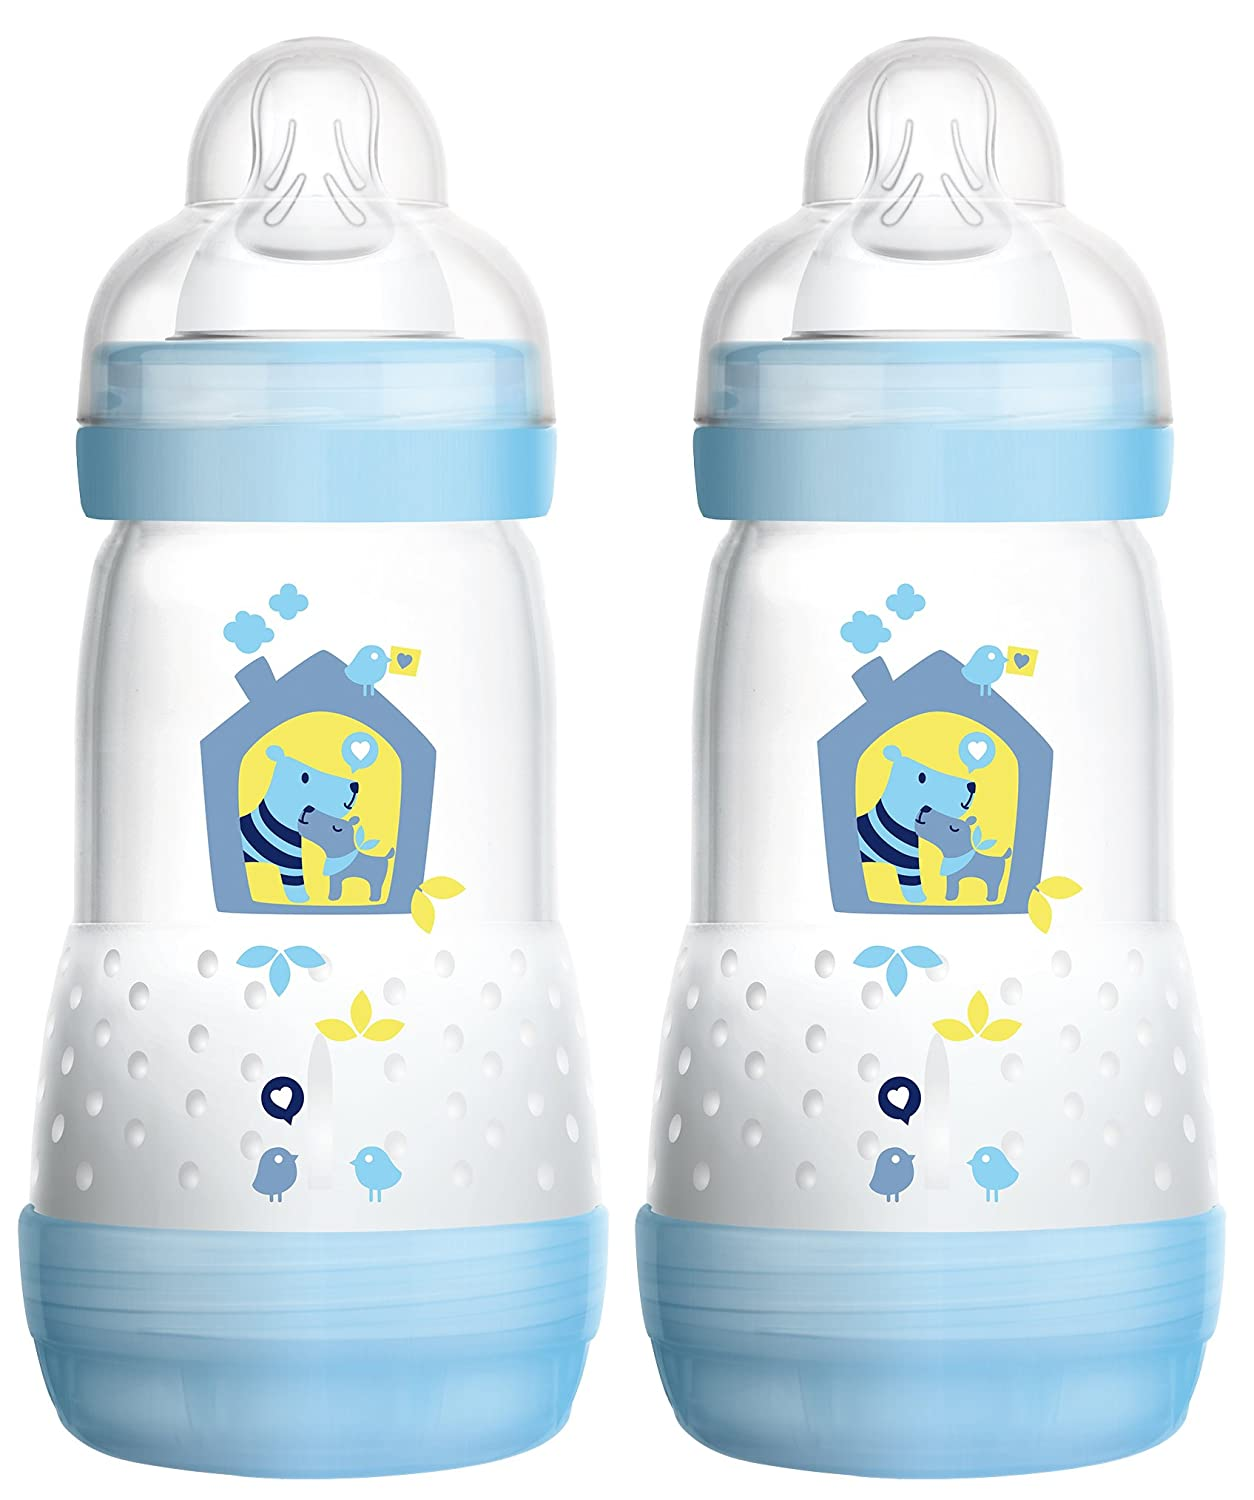 Mam 99921511 Anti-Colic Bottle 260 ml 2-Pack for Boys MAM Babyartikel